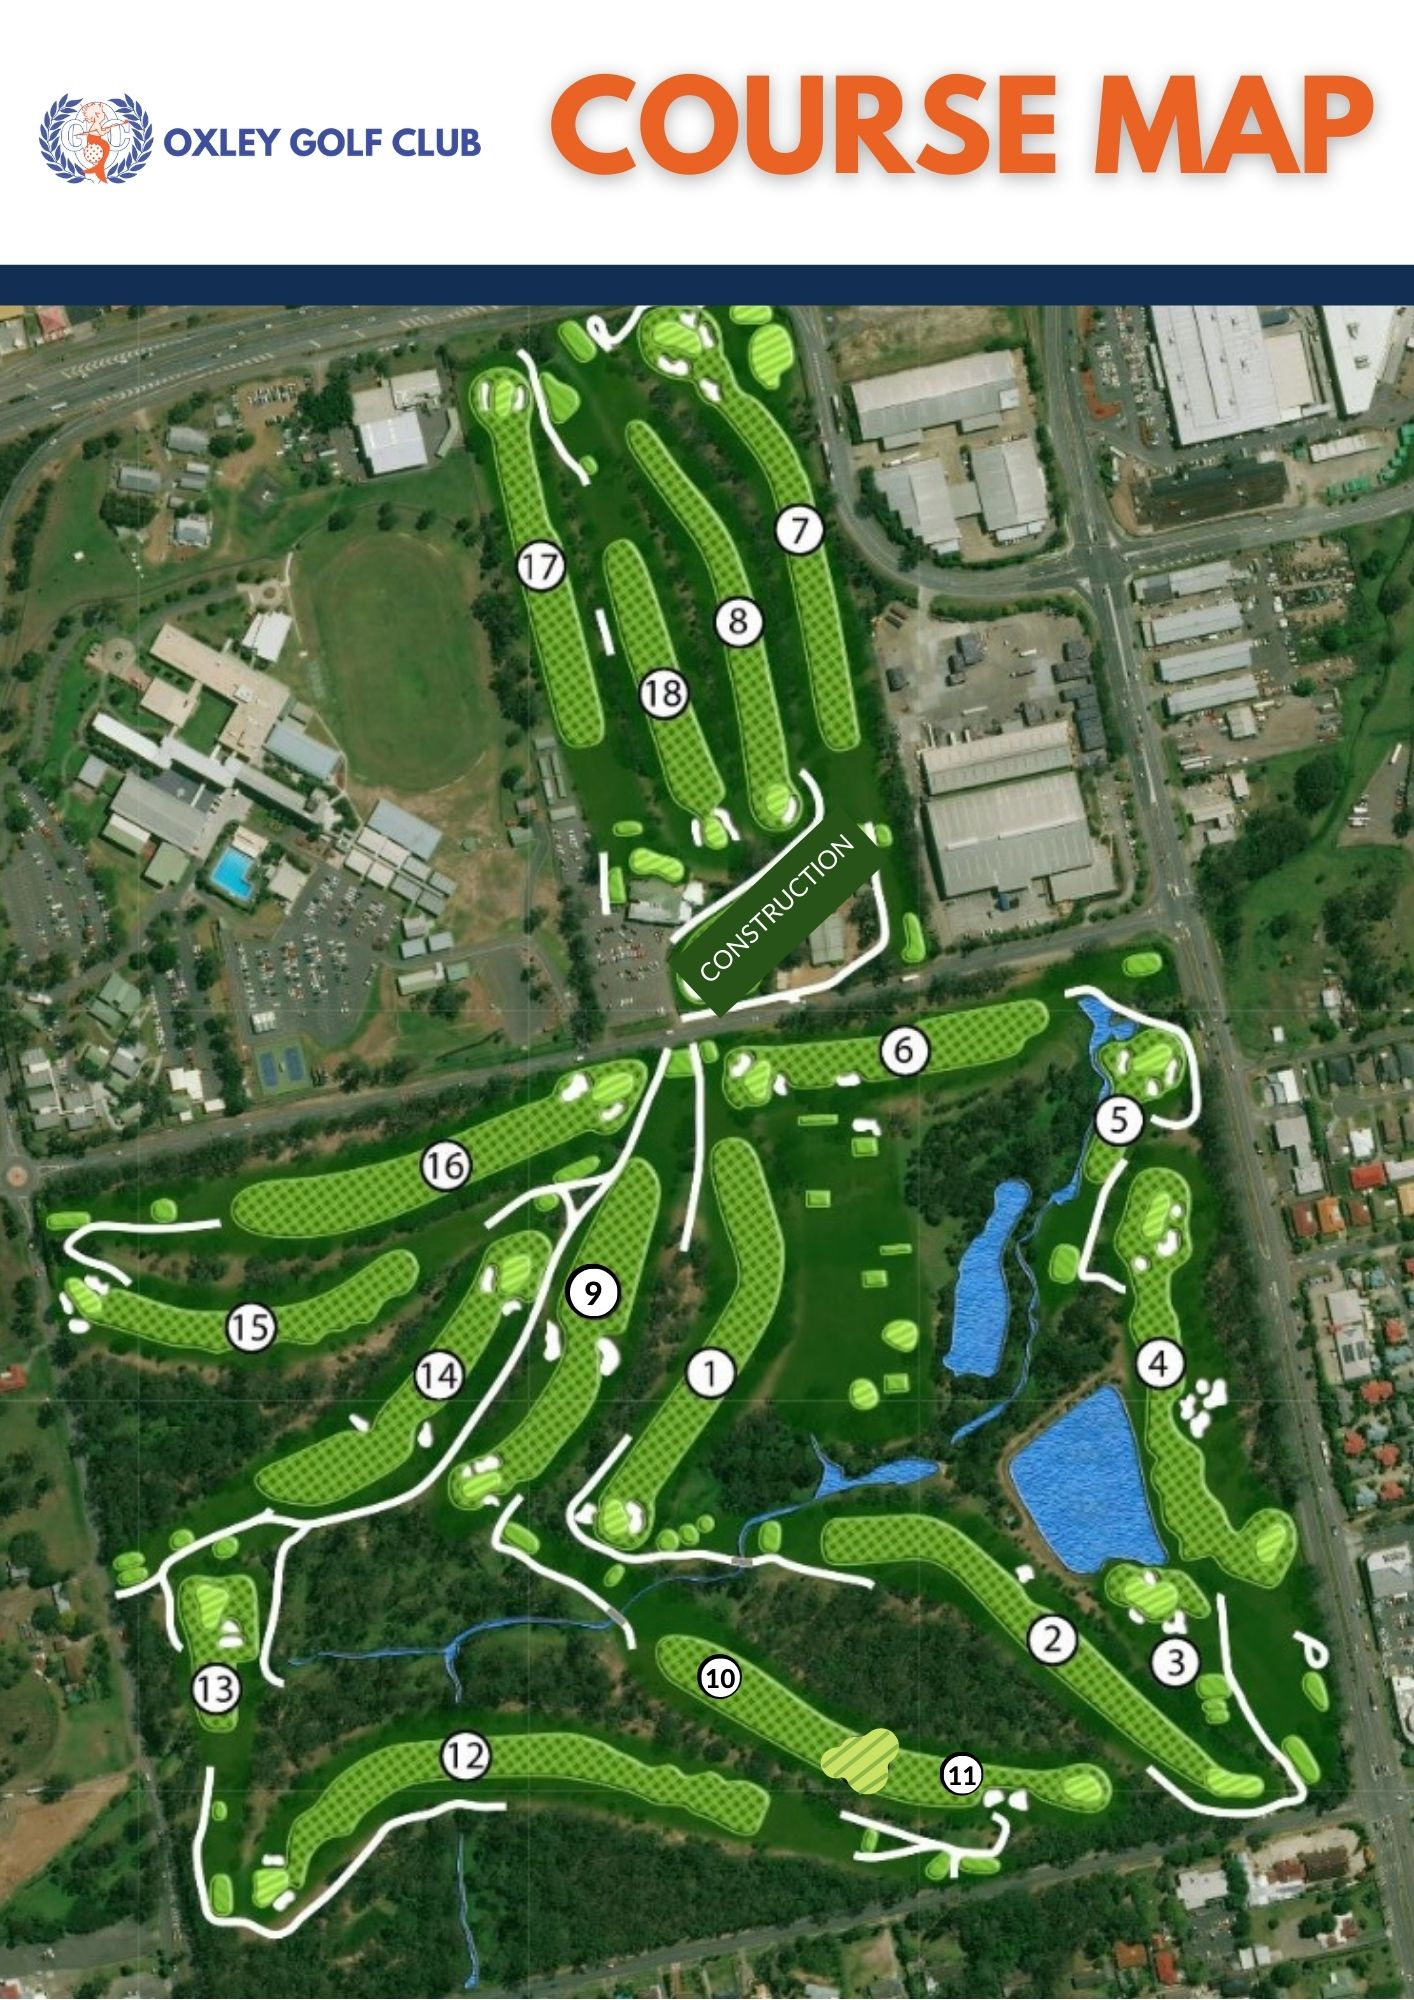 Course Map During Construction 2021